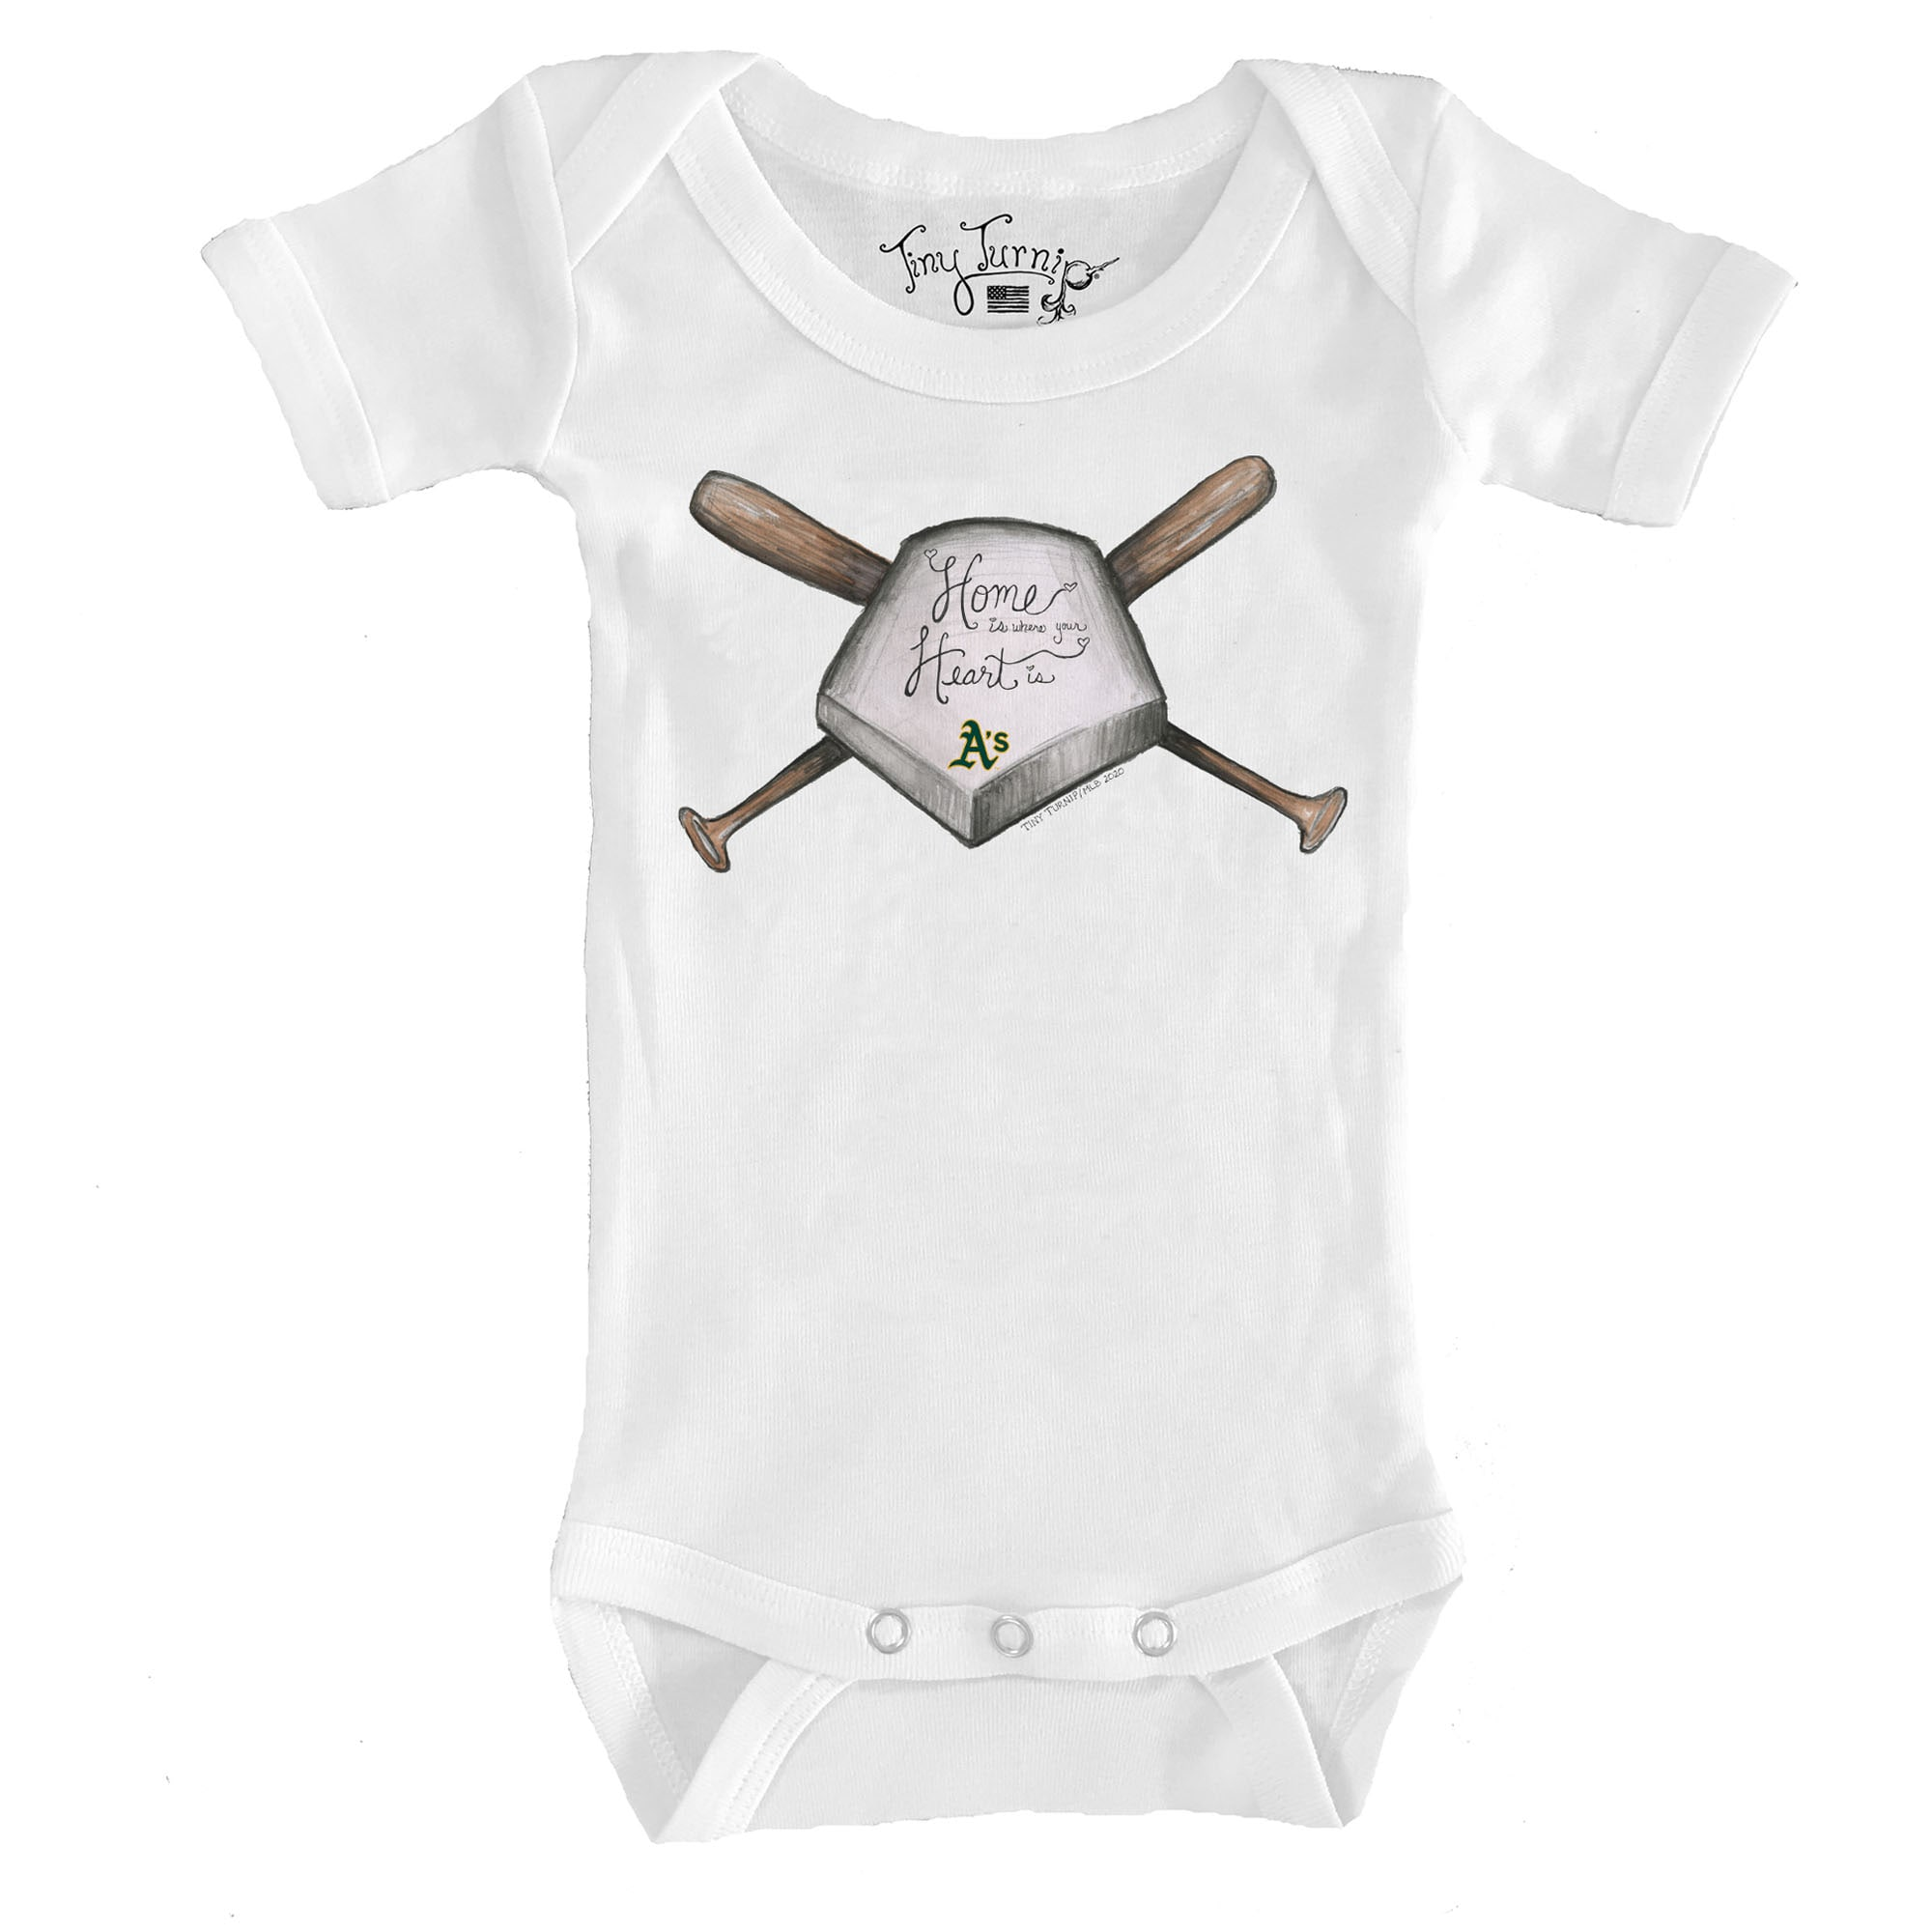 Oakland Athletics Tiny Turnip Infant Home Is Where Your Heart Is Bodysuit - White